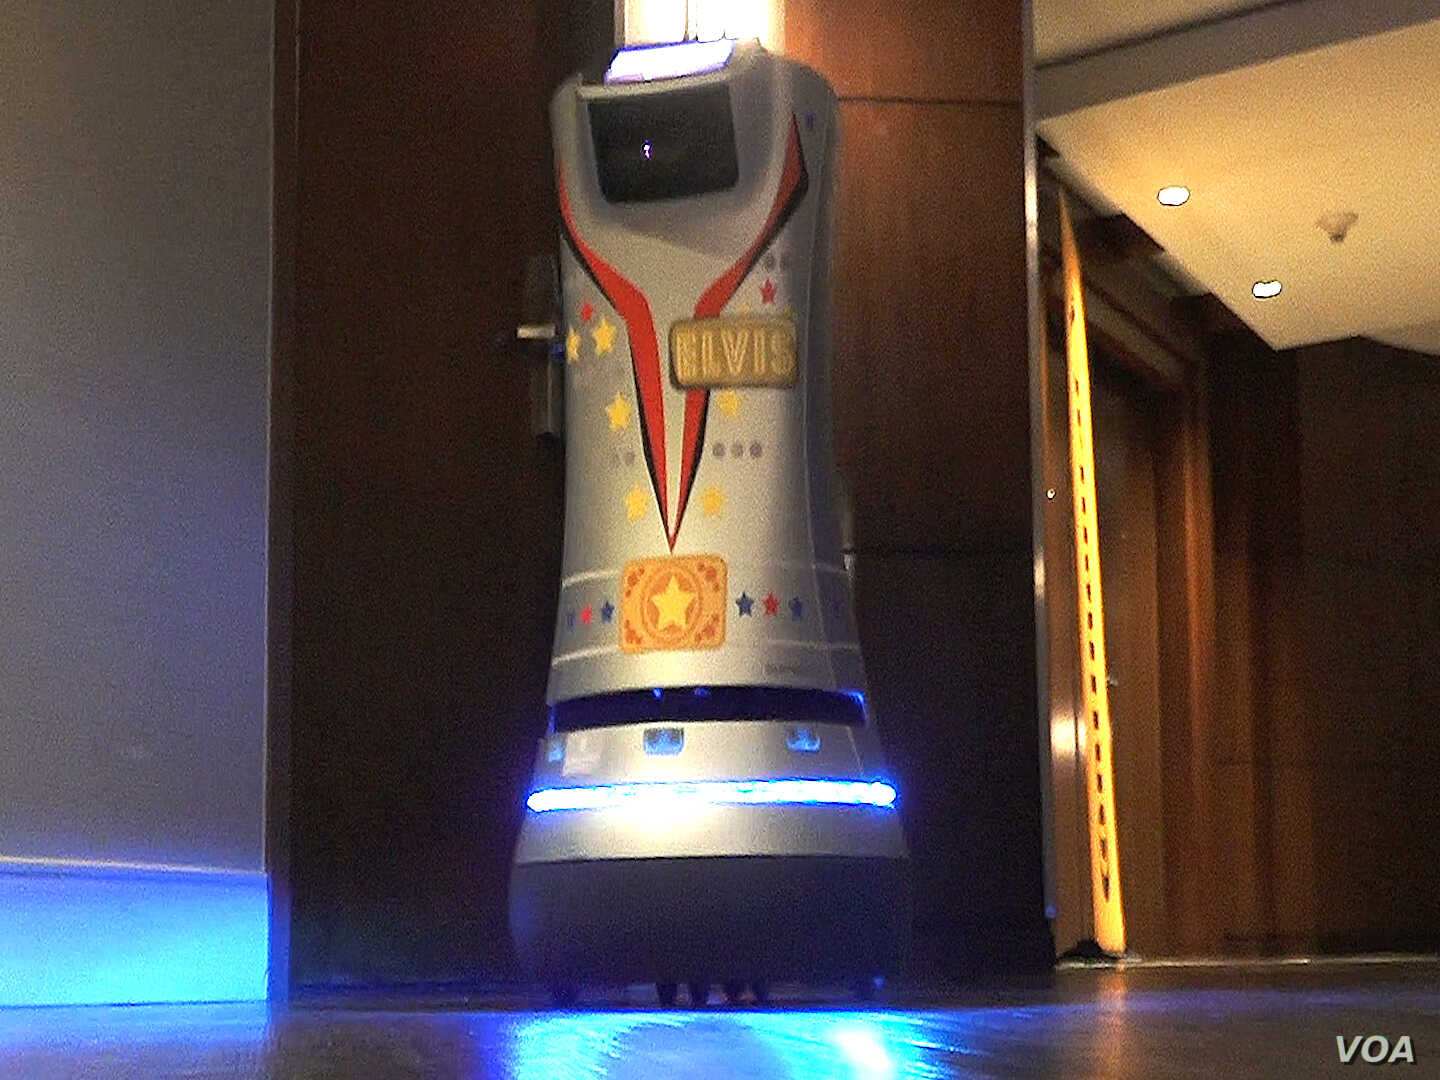 Delivery Robots Find Work in Hotels, Hospitals and Beyond